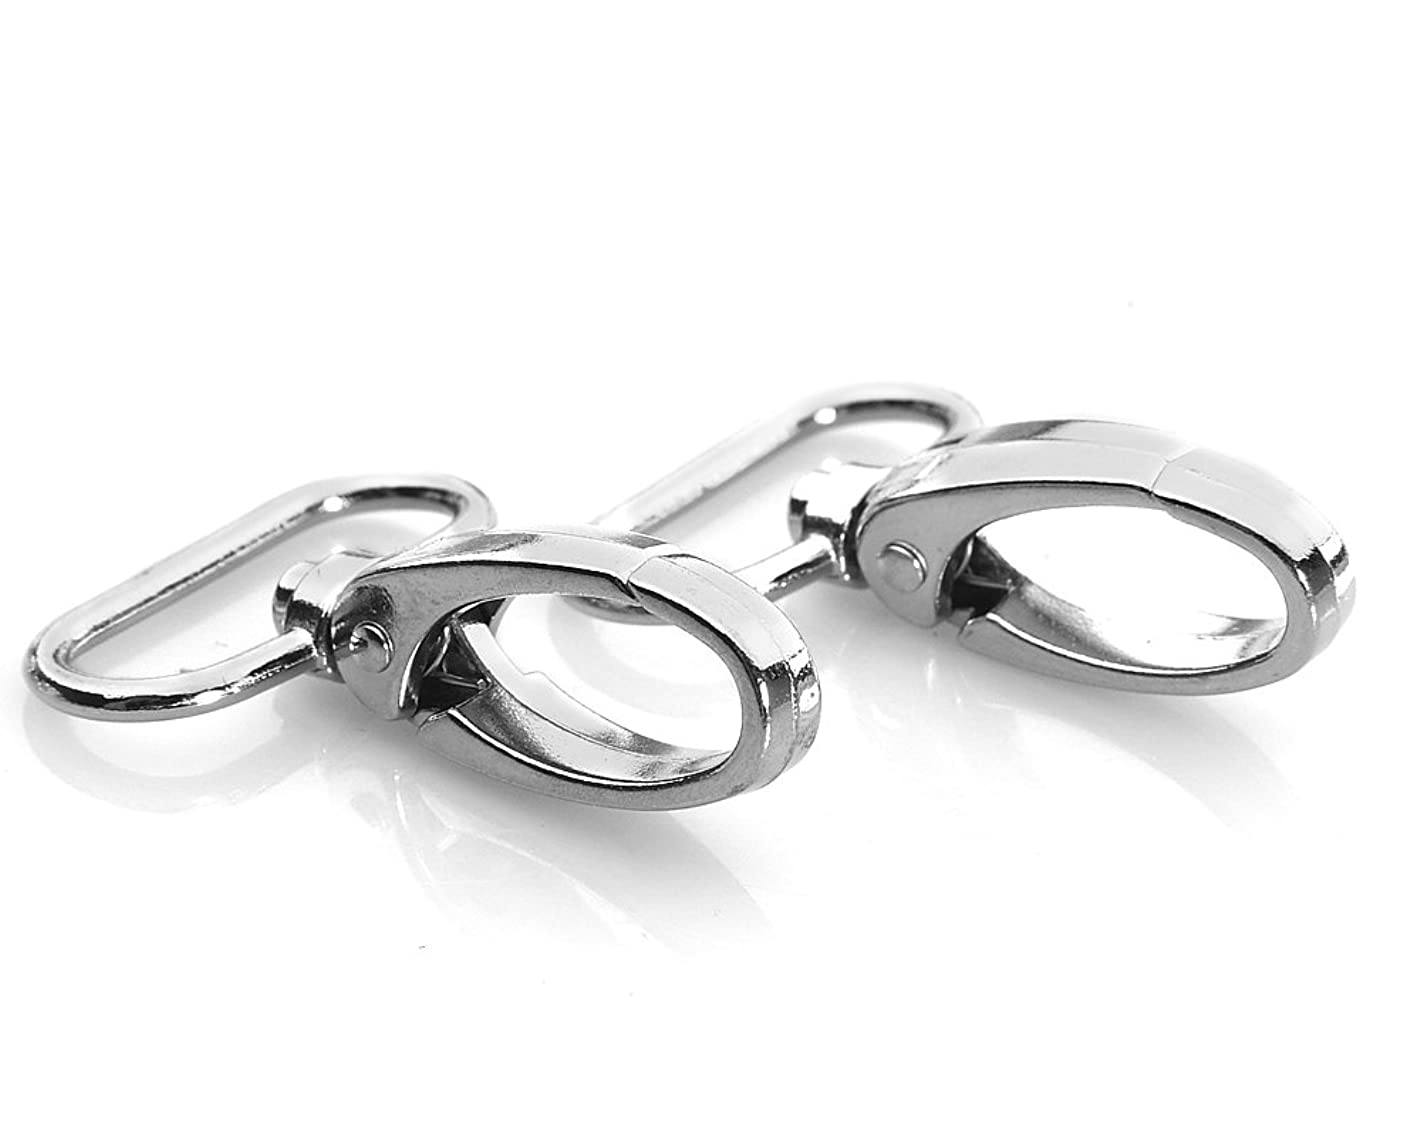 HI-BOOM Pack Of 20 Metal 1 Inches Silvery Curved Lobster Clasps Swivel Trigger Clips Snap